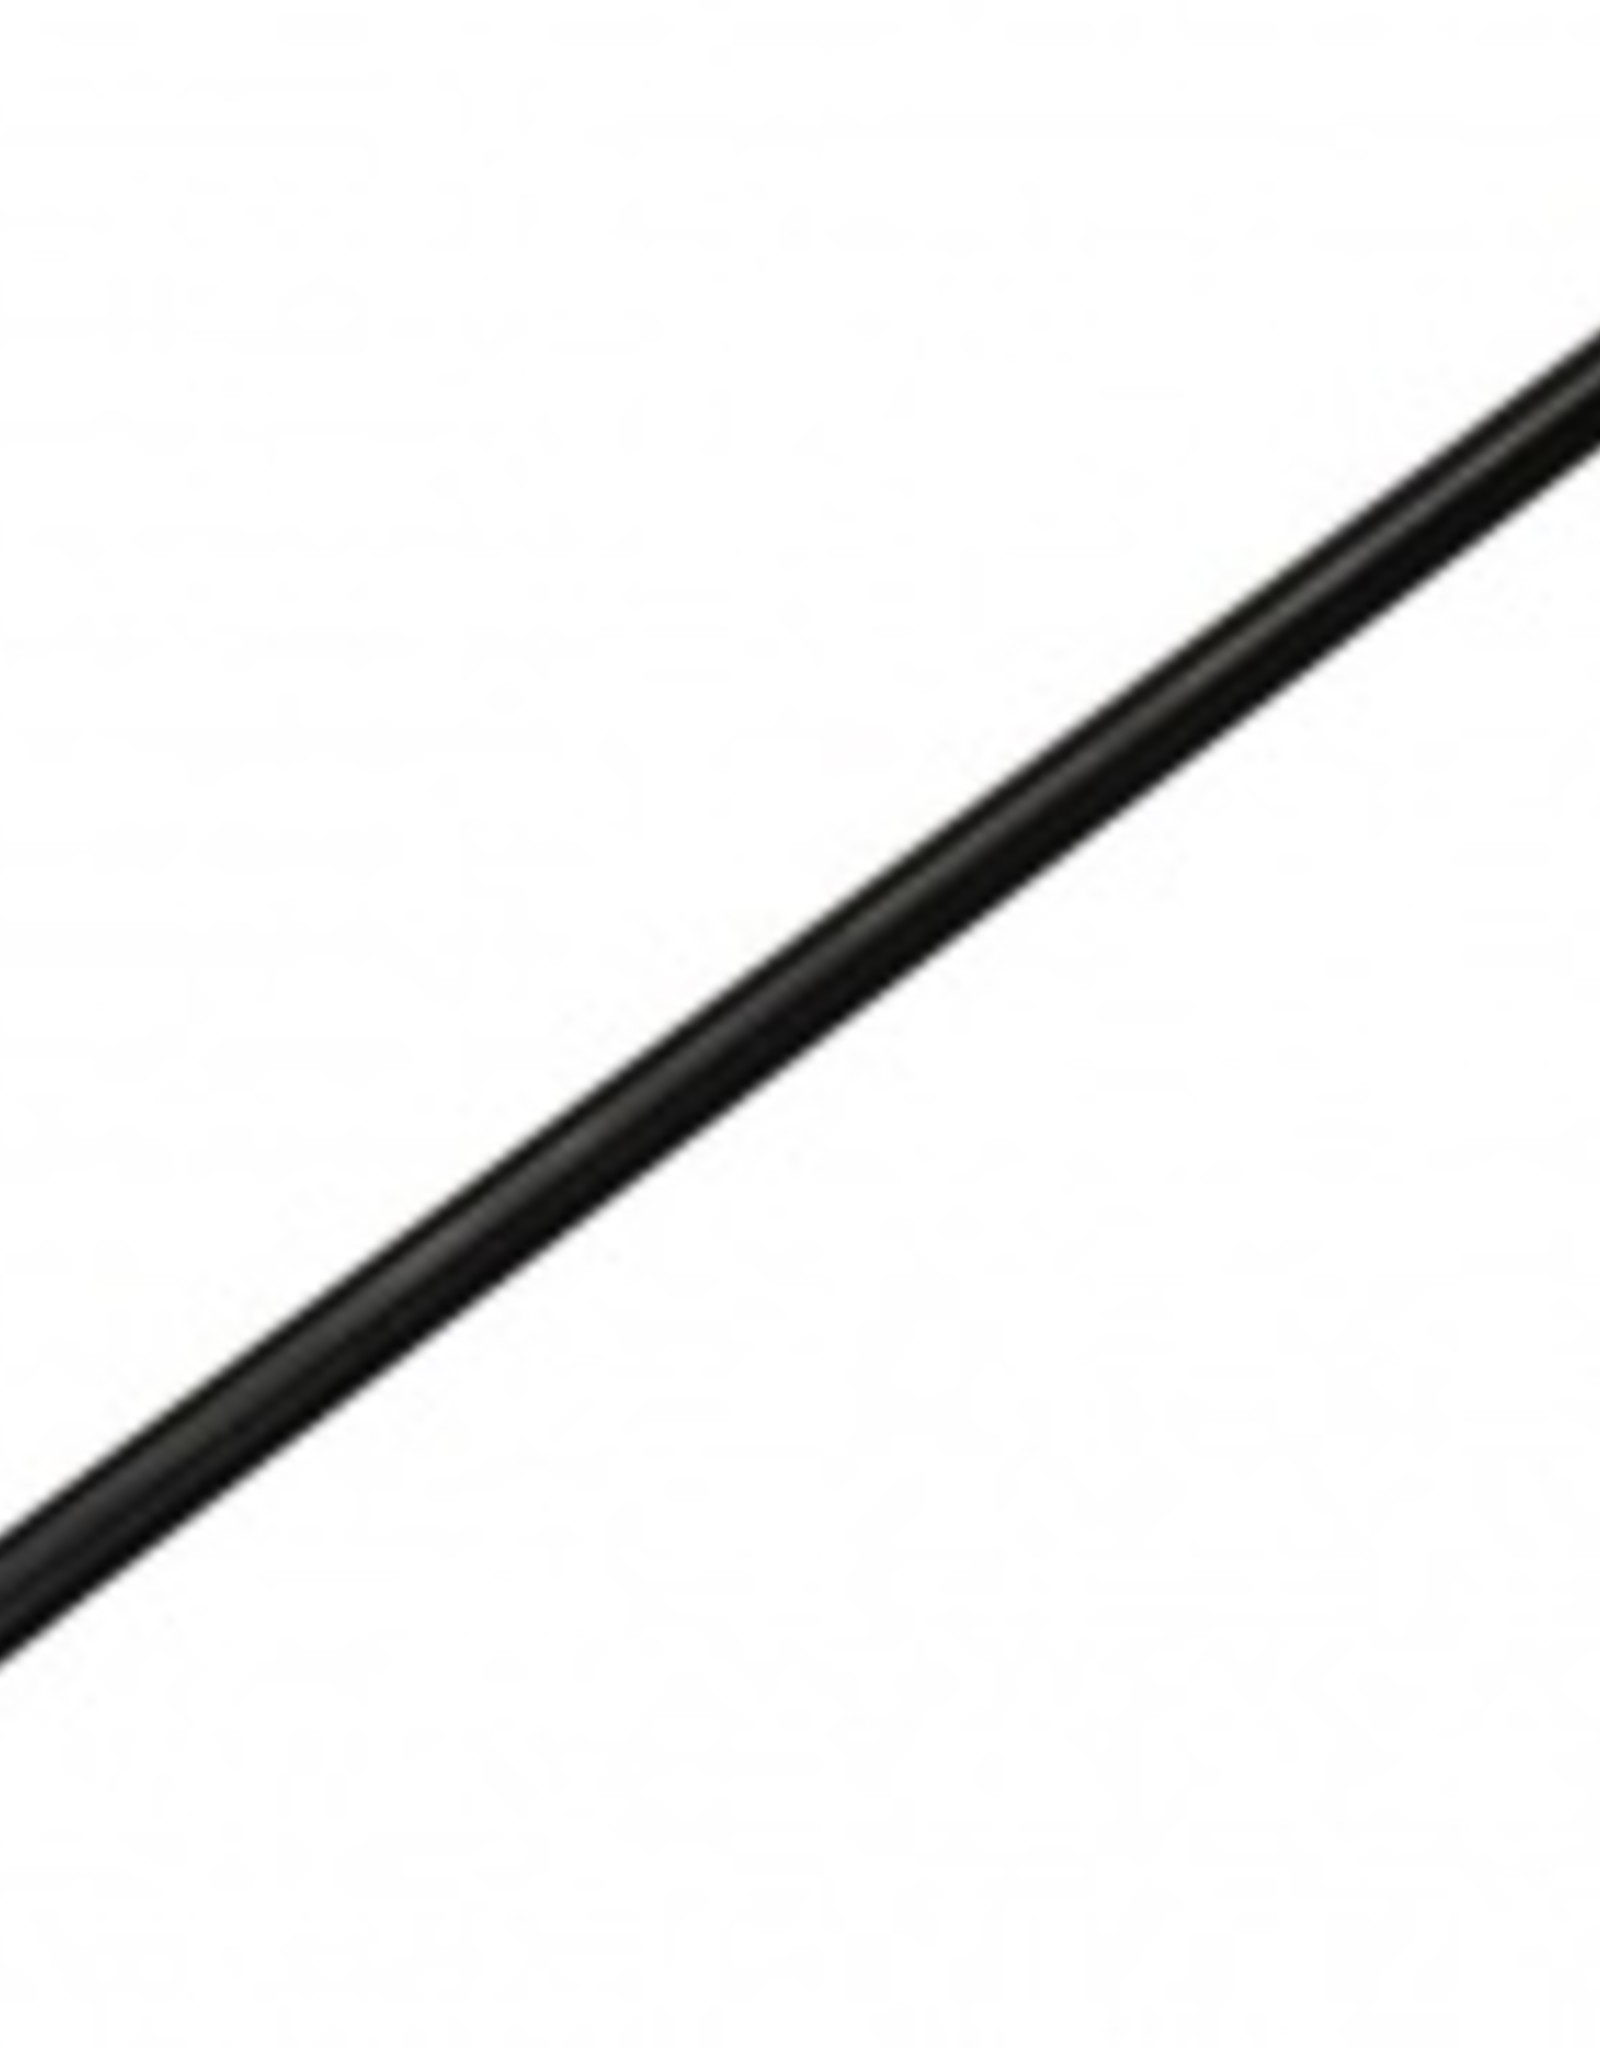 Traxxas Traxxas X-MAXX Driveshaft, steel constant-velocity (shaft only, 160mm) (1) (for use only with #7751, 7754, 7753, and/or 7753R)